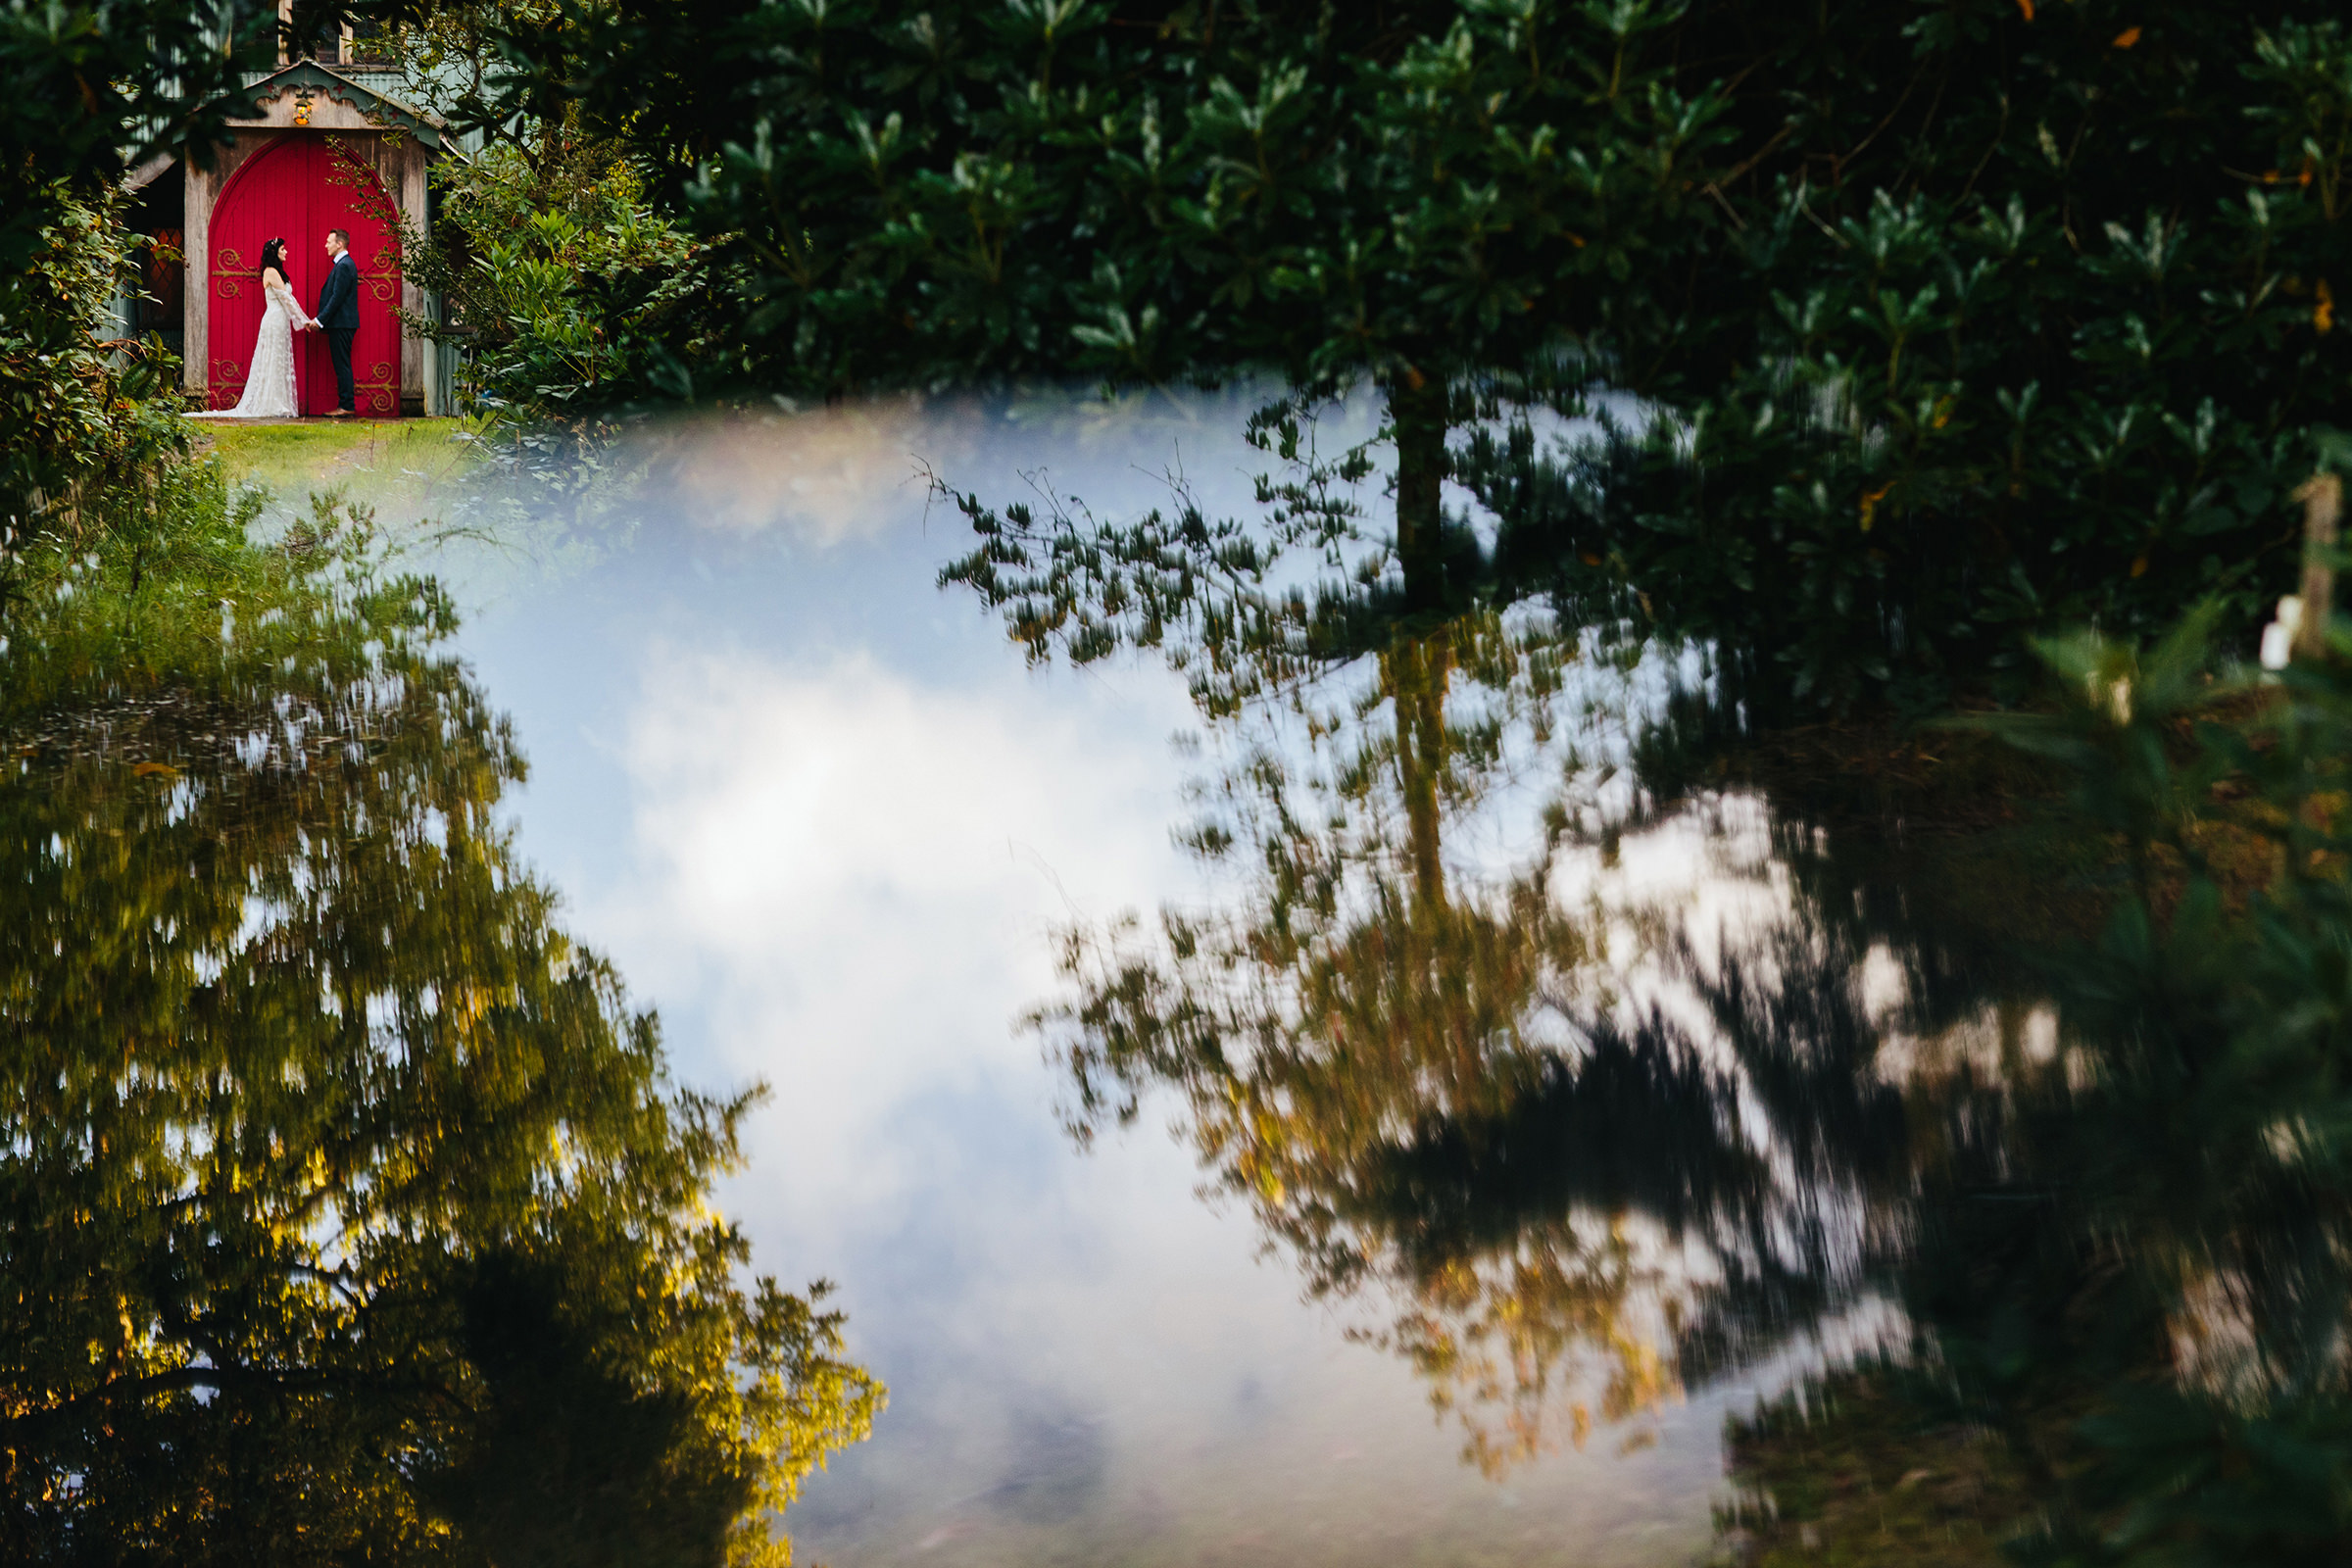 Couple in front of cottage with lake reflection at Walcot Hall Shropshire - photo by The Crawleys